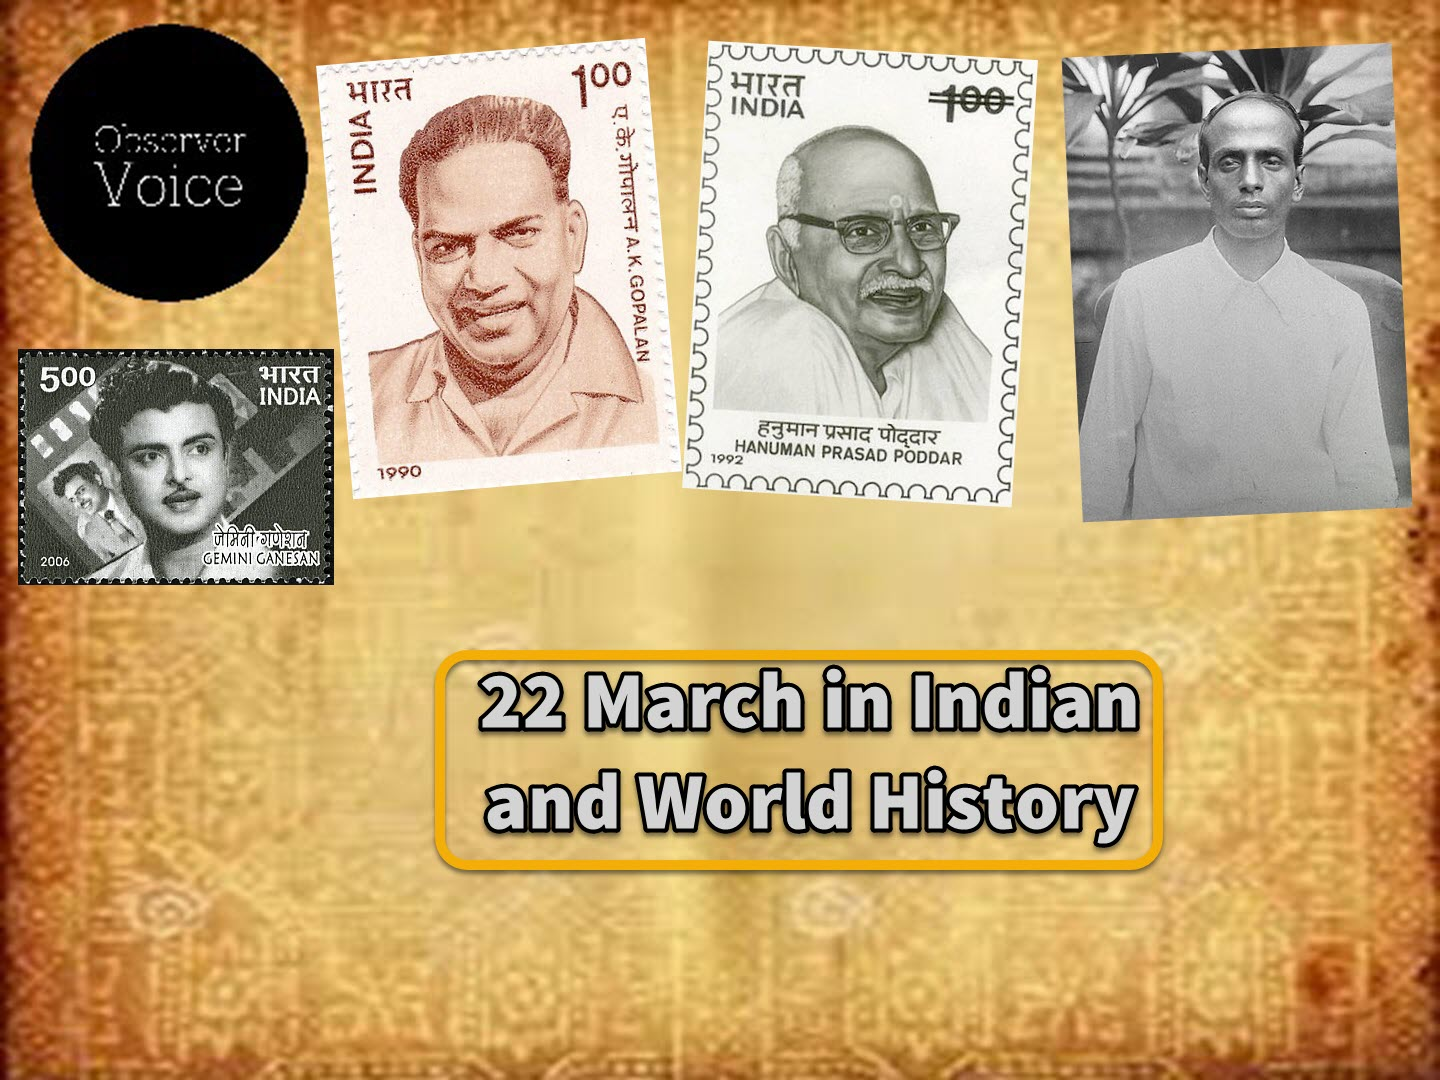 22 March in Indian and World History